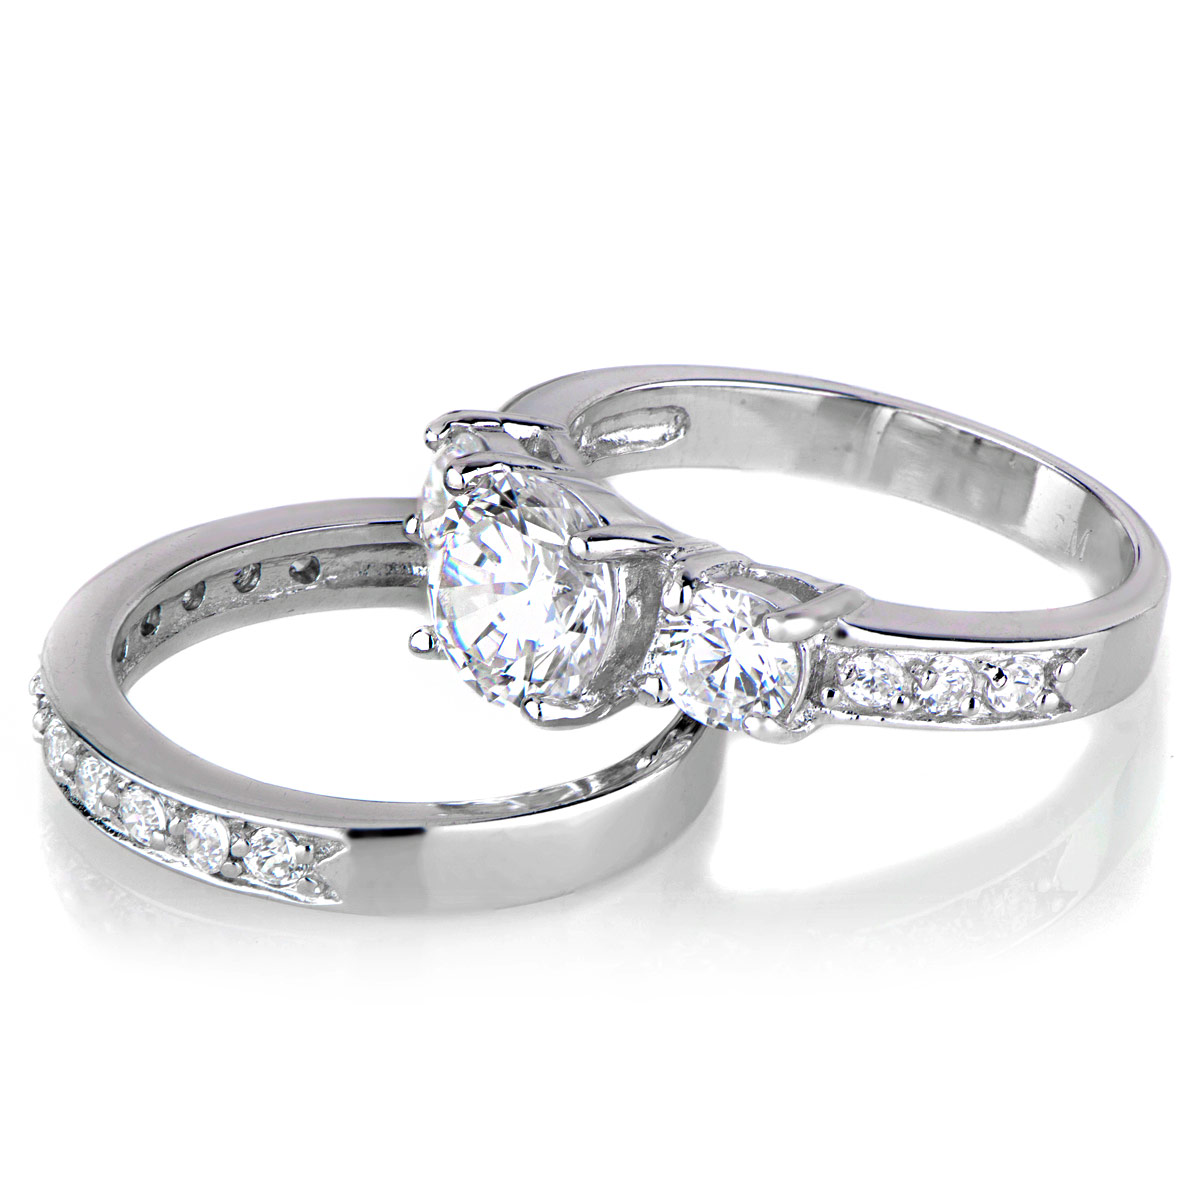 lokis 3 stone cz wedding ring set - Cubic Zirconia Wedding Rings That Look Real